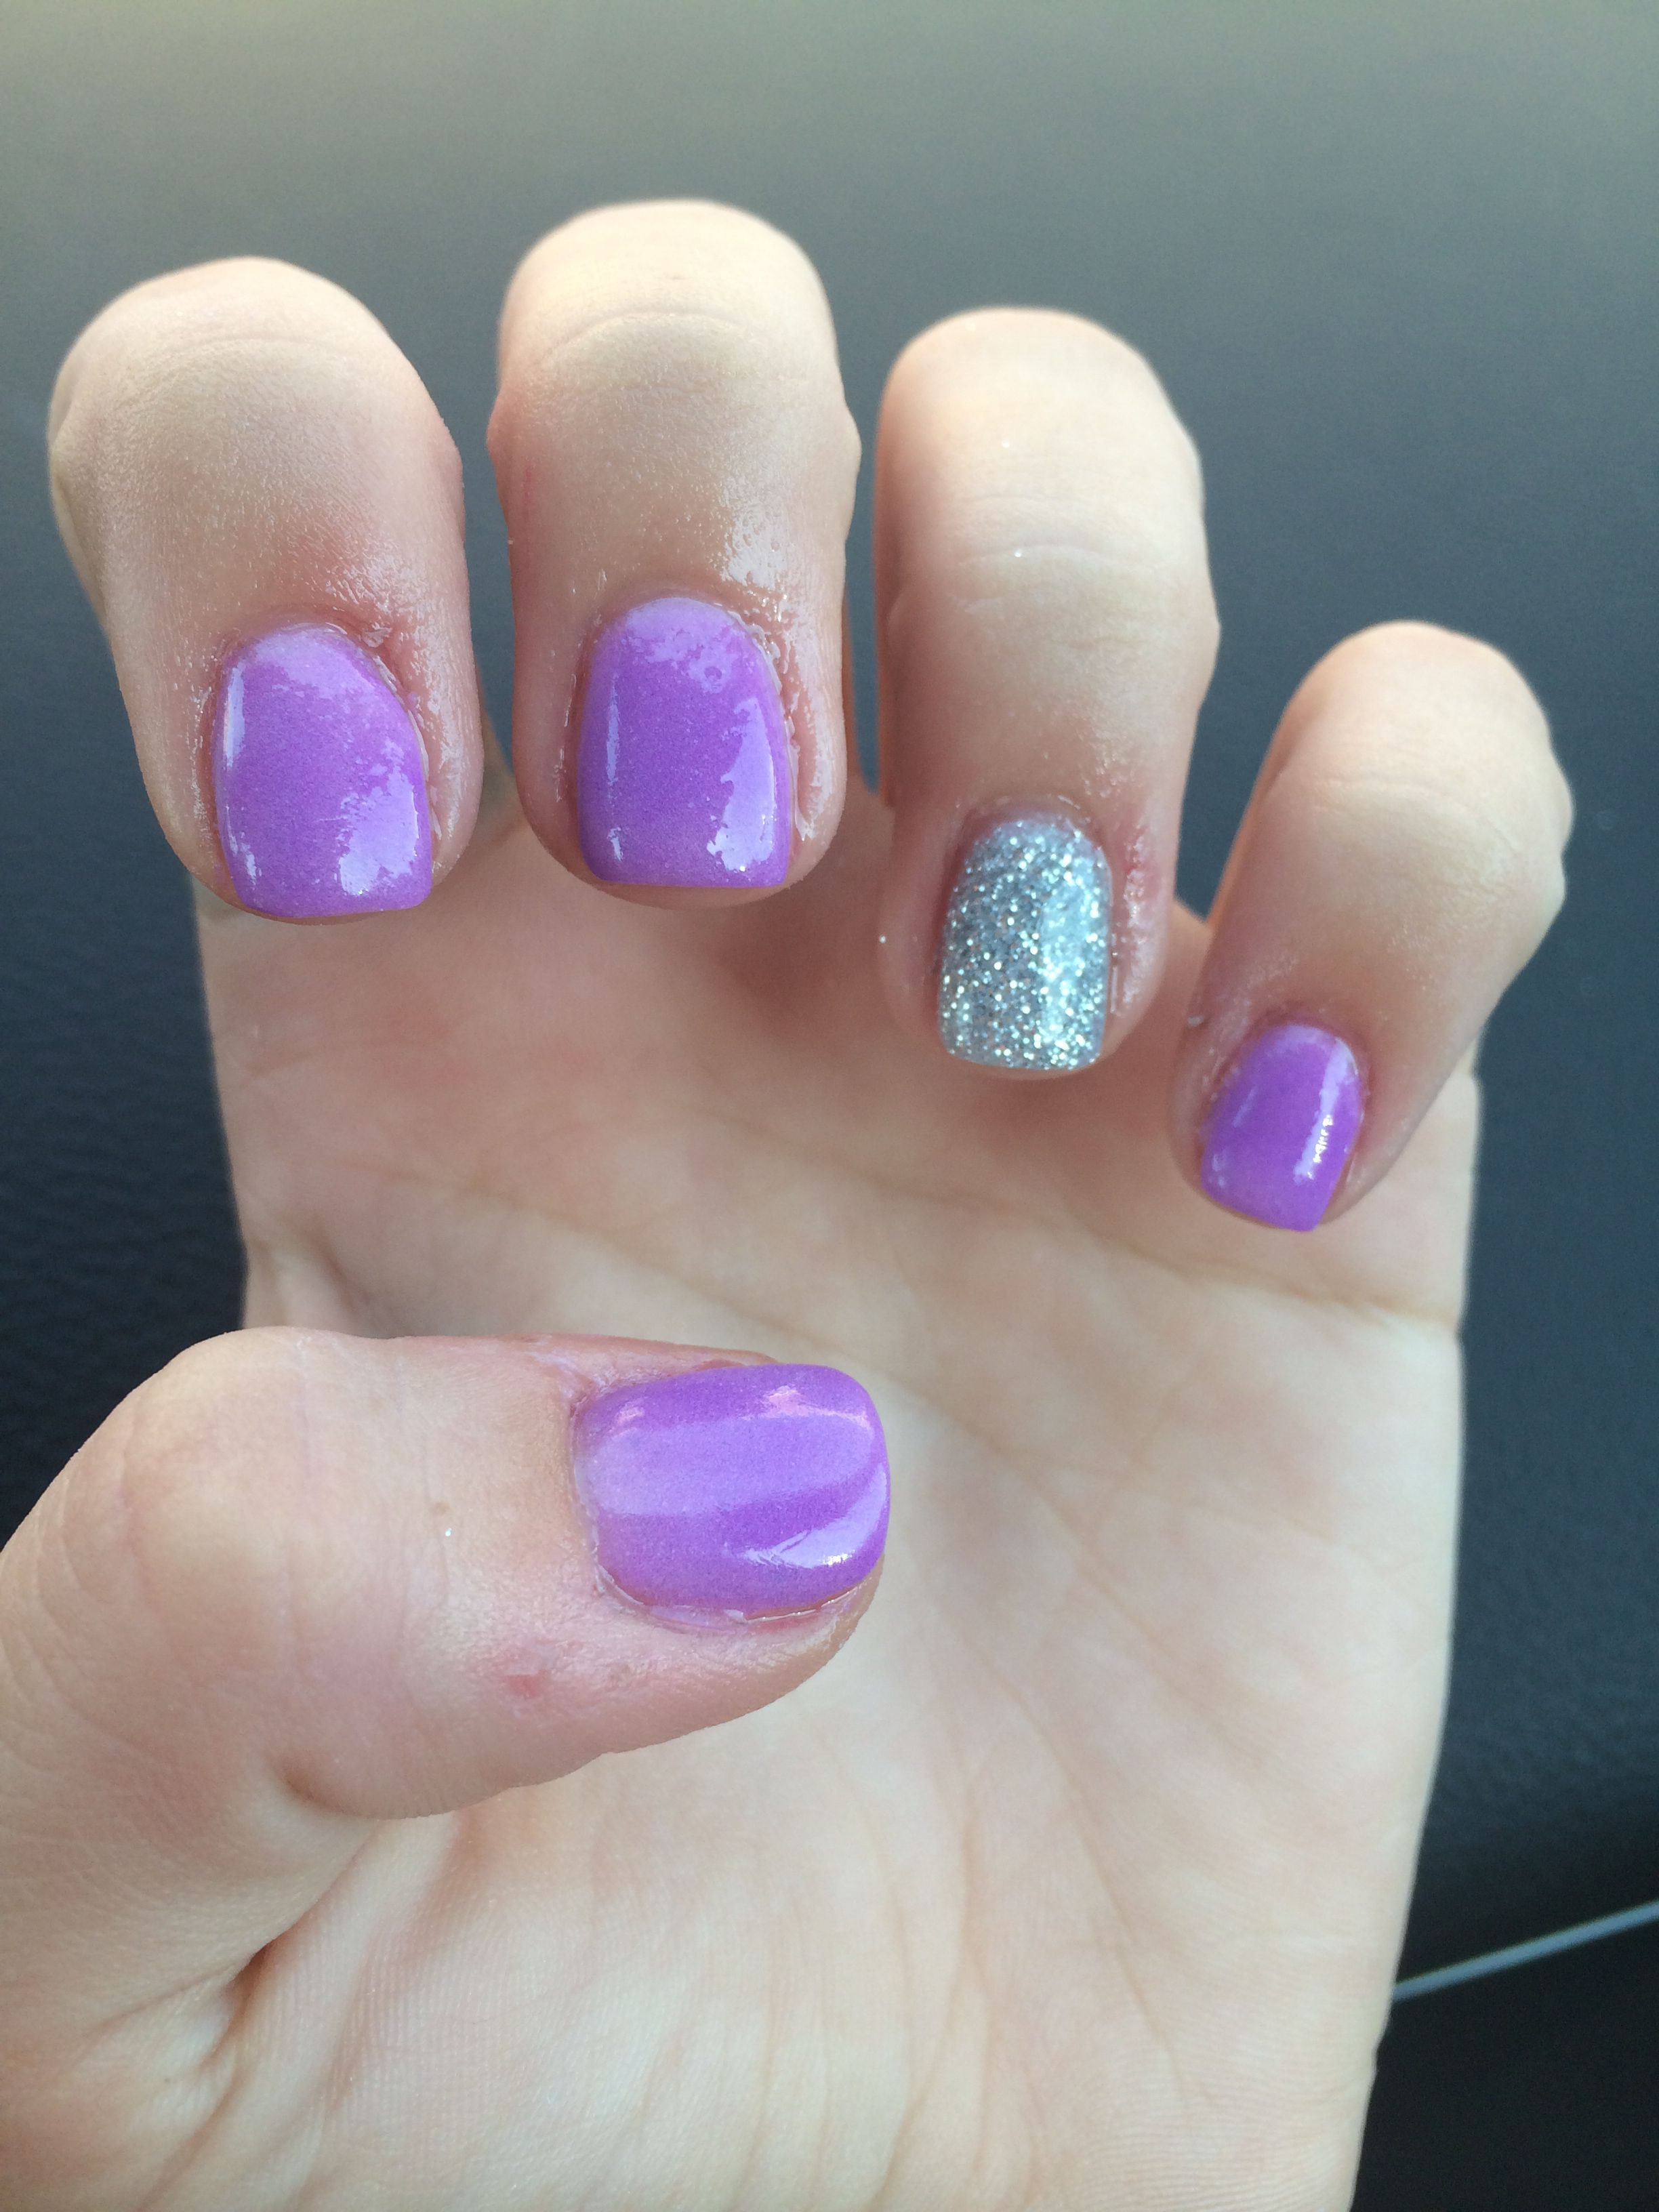 Nexgen nails | Nails | Pinterest | Makeup